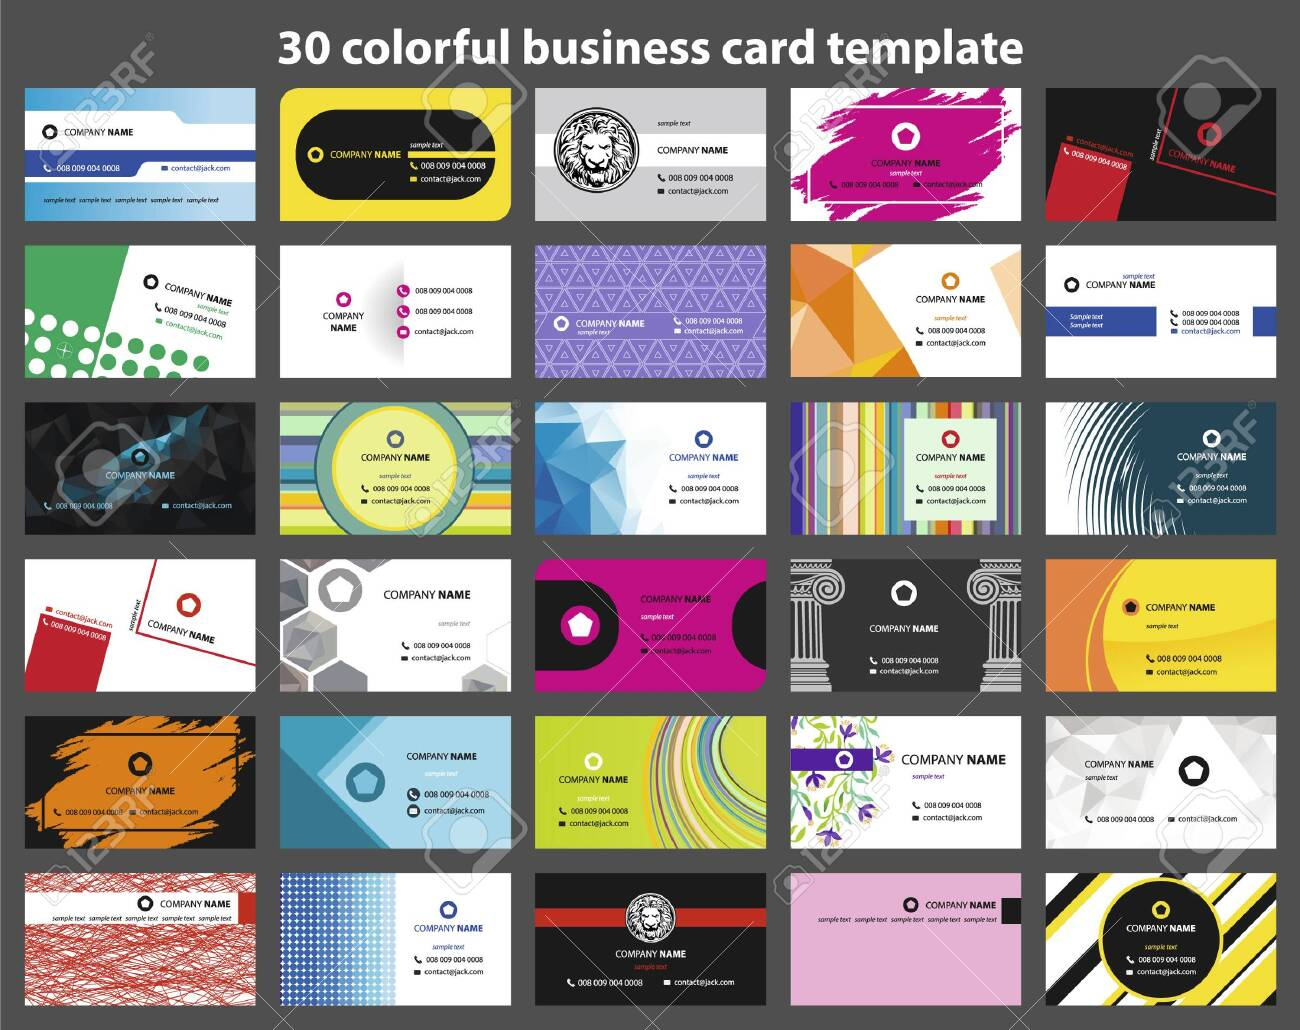 30 colorful business card template - 147975403